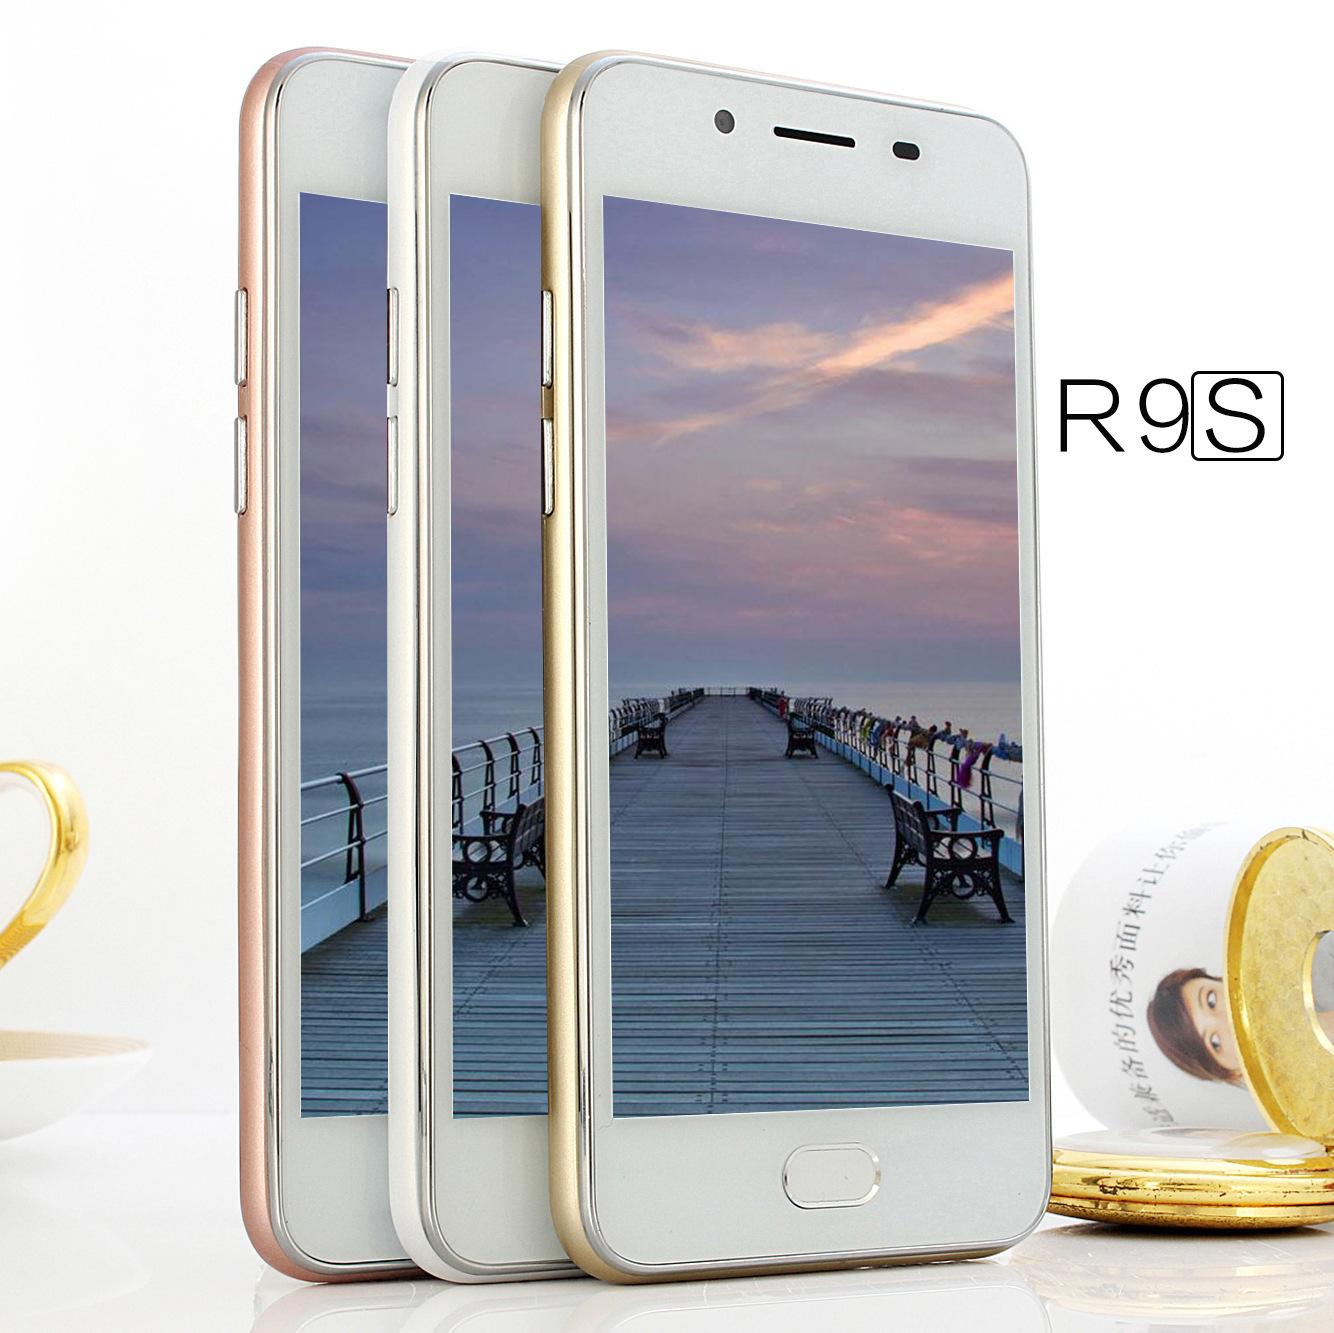 Online Retailers Mobile Phone 4.5 Inch Screen R9 Mini Appearance 3g Intelligence Mobile Phone